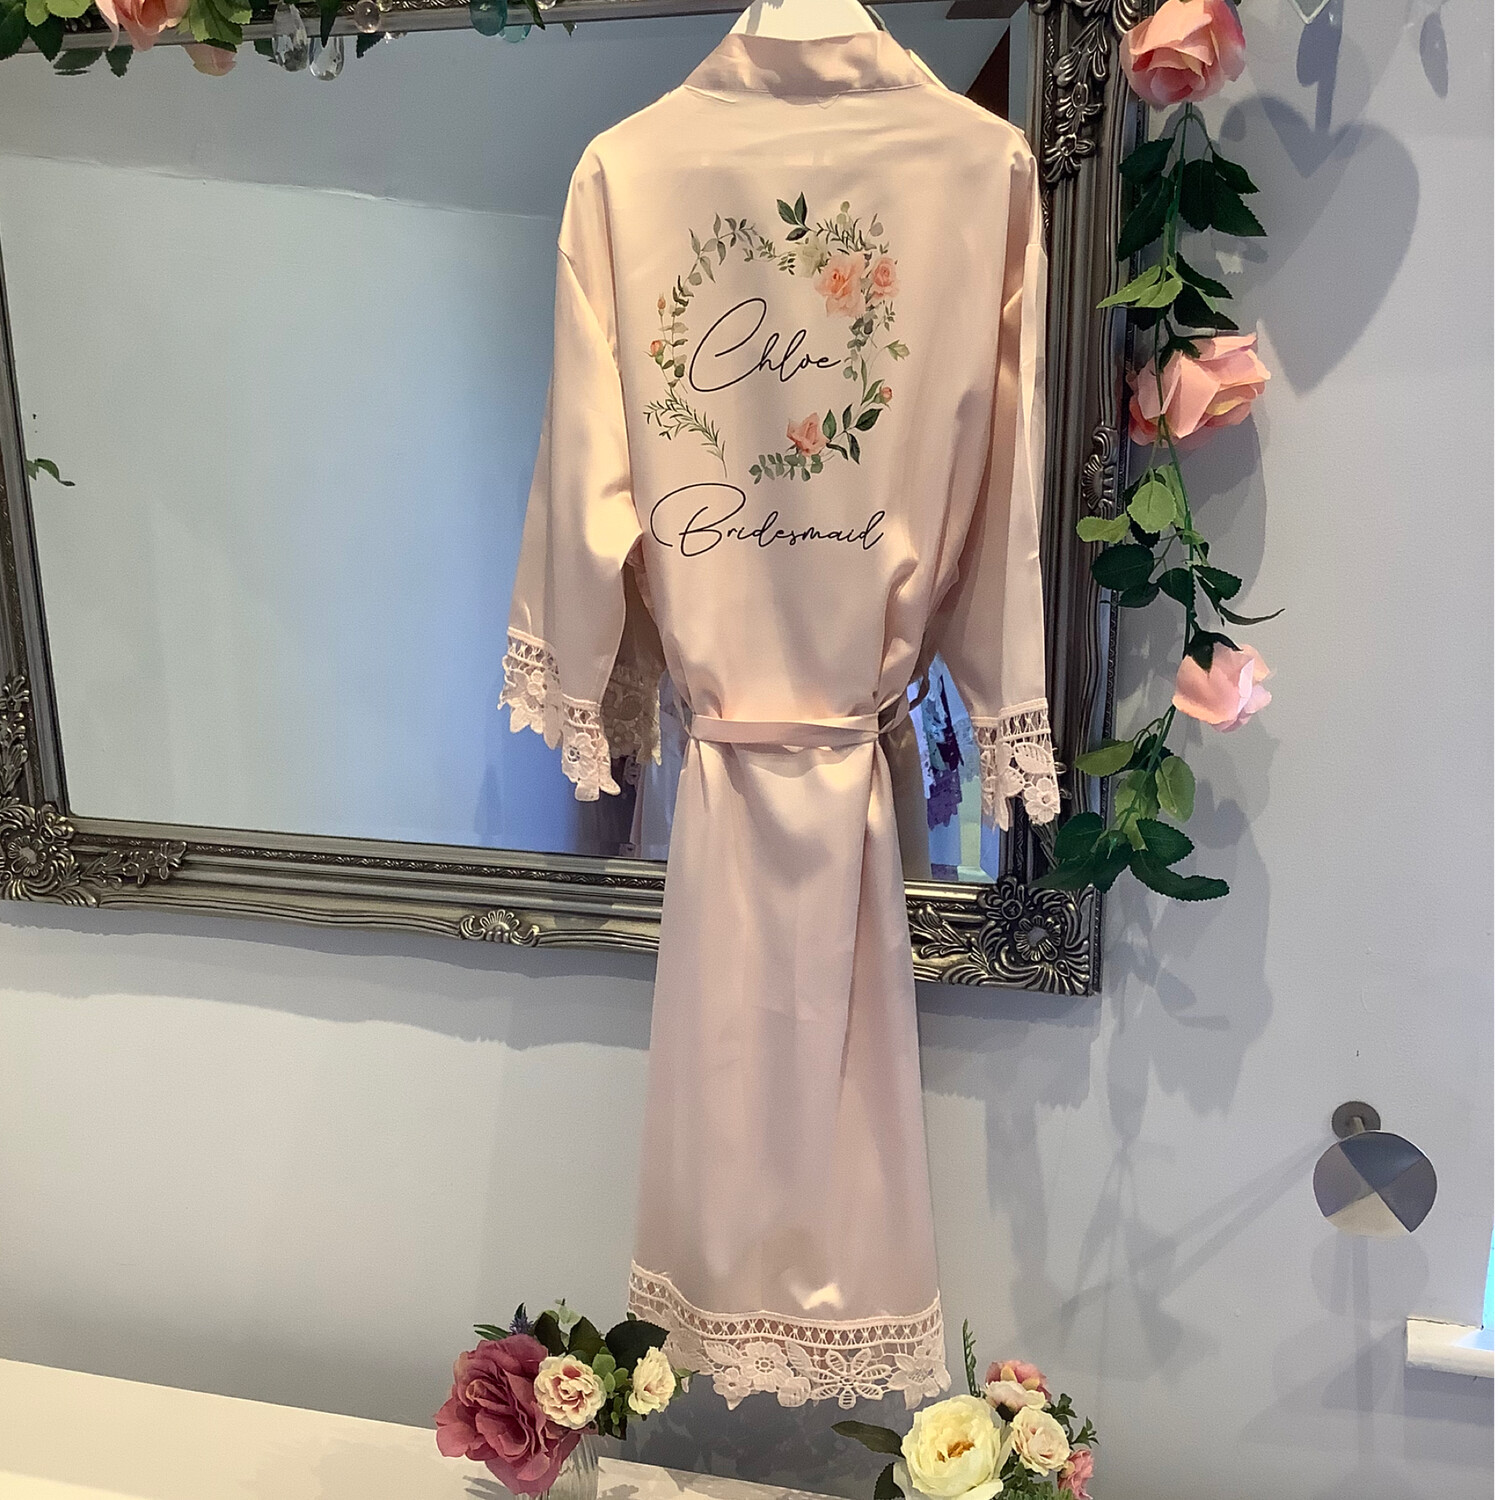 CHLOE floral wreath design satin lace robe